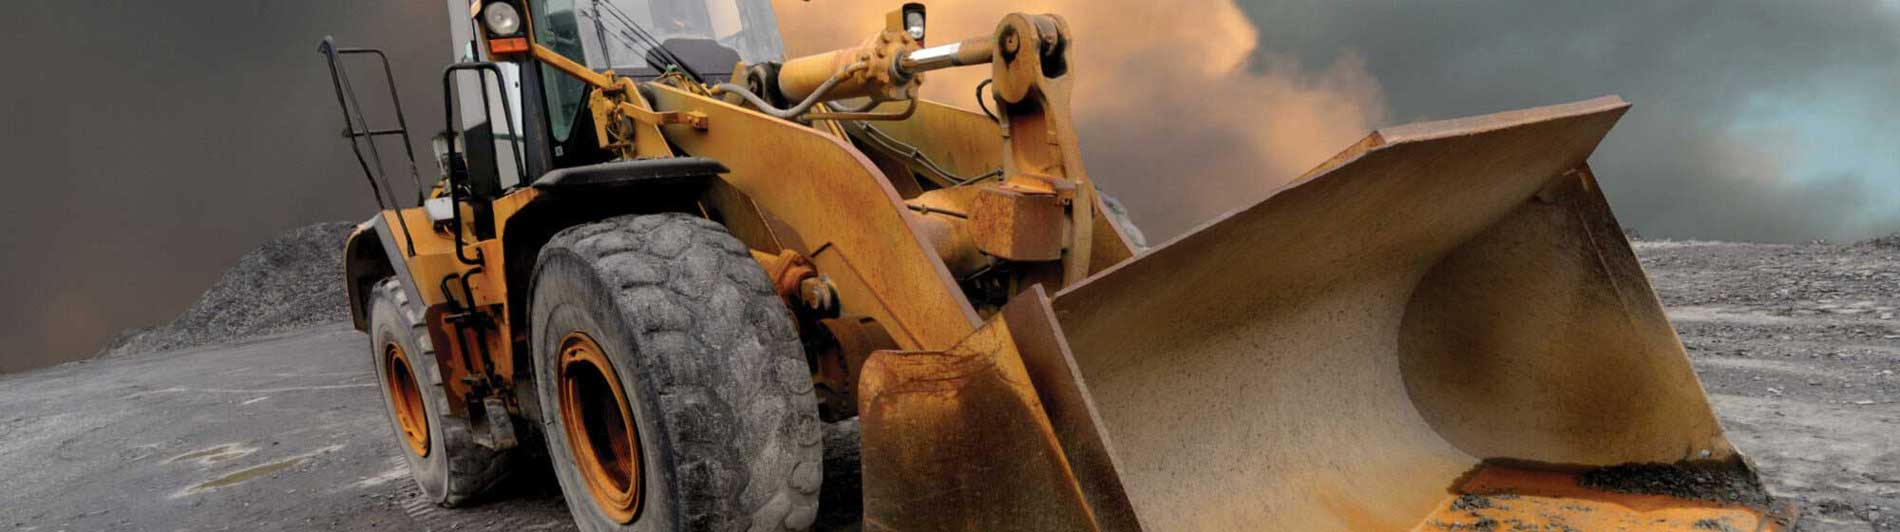 Construction Equipment - Slider Image